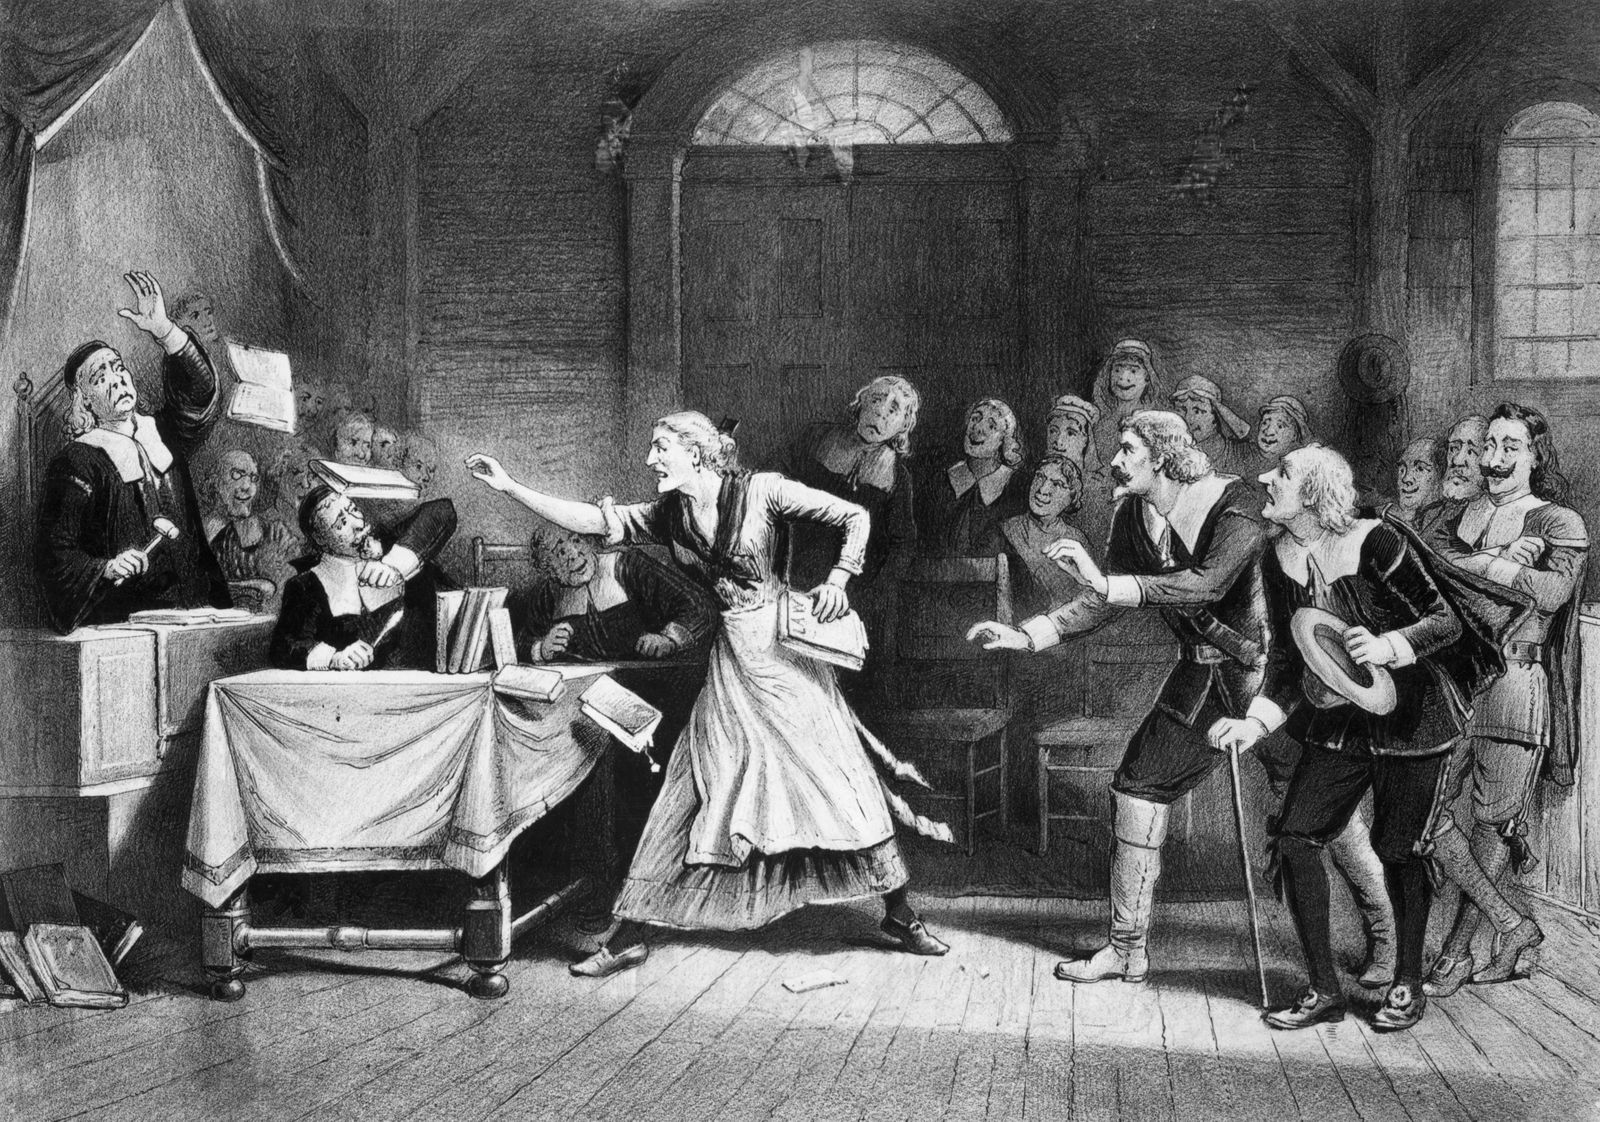 Lithograph by George H. Walker After The Witch Number 3 by J.E. Baker